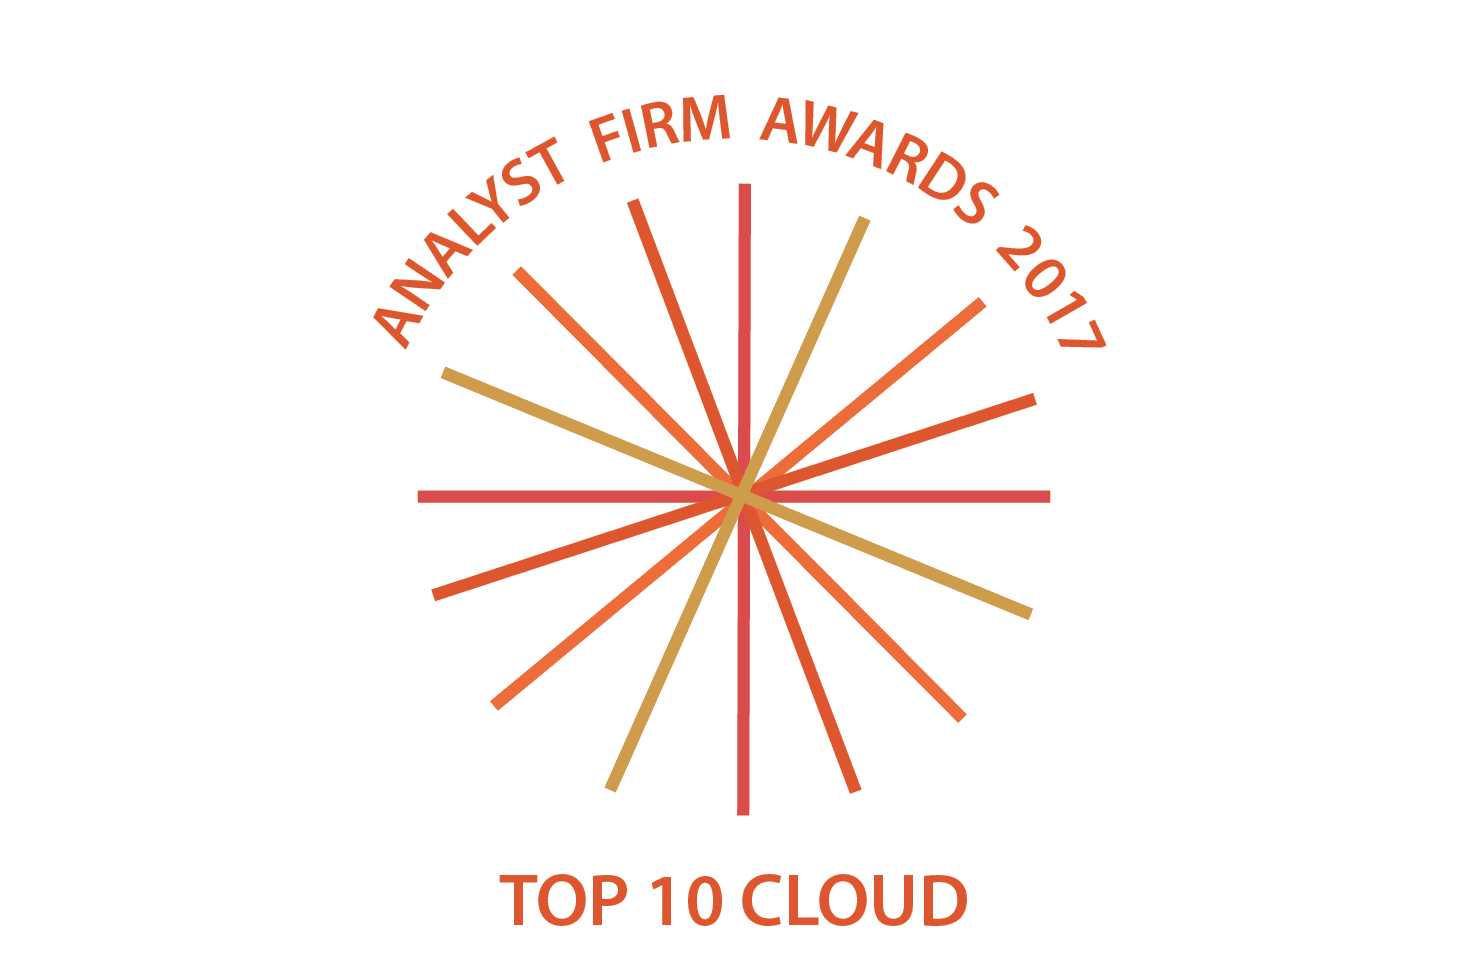 KPMG in, Ovum out: Cloud Analyst Firm Awards